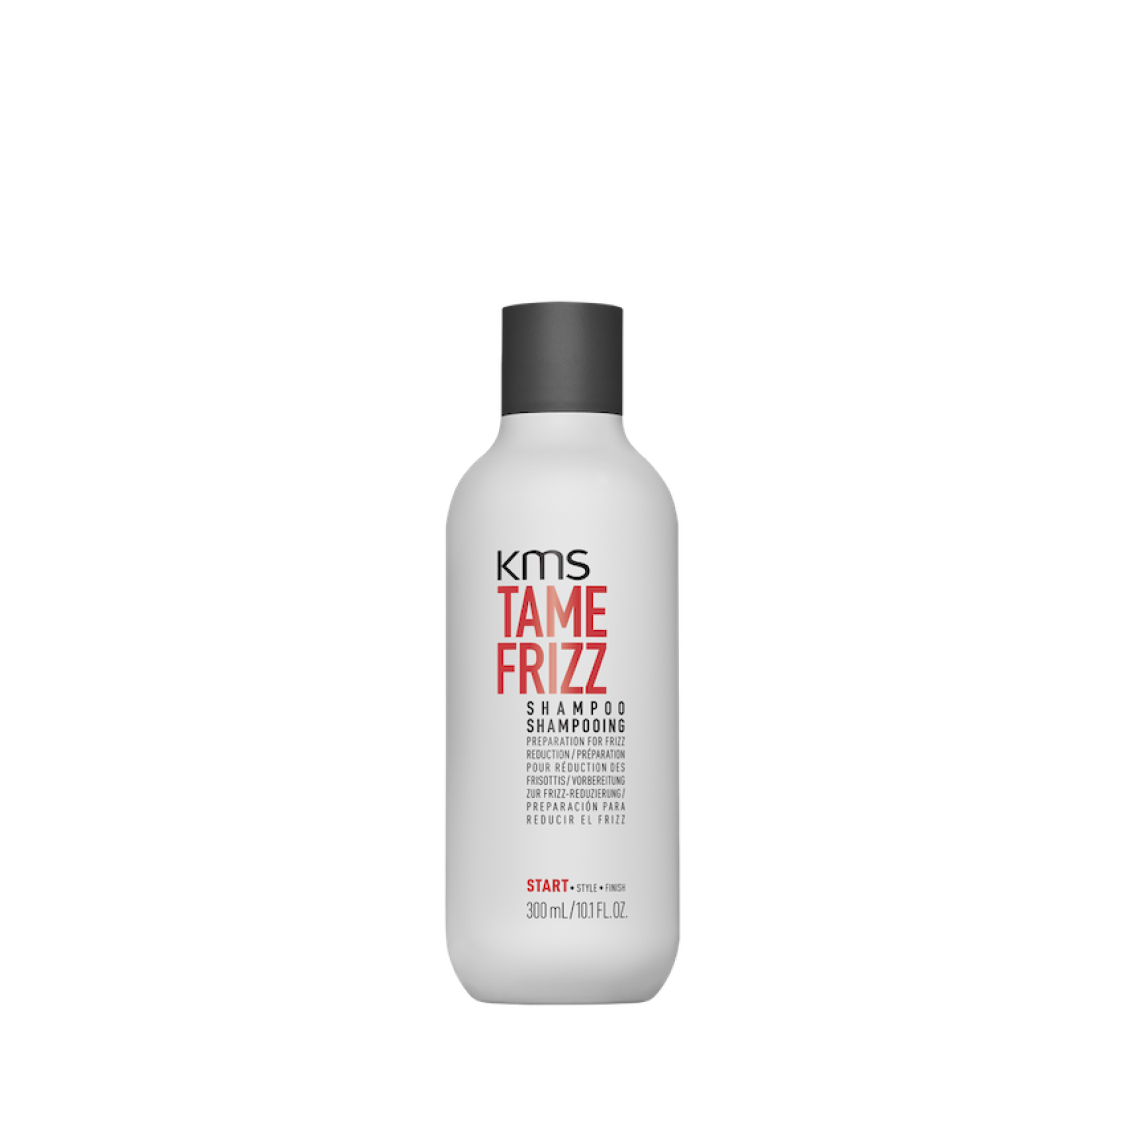 KMS - Tame Frizz Shampoo 300ml